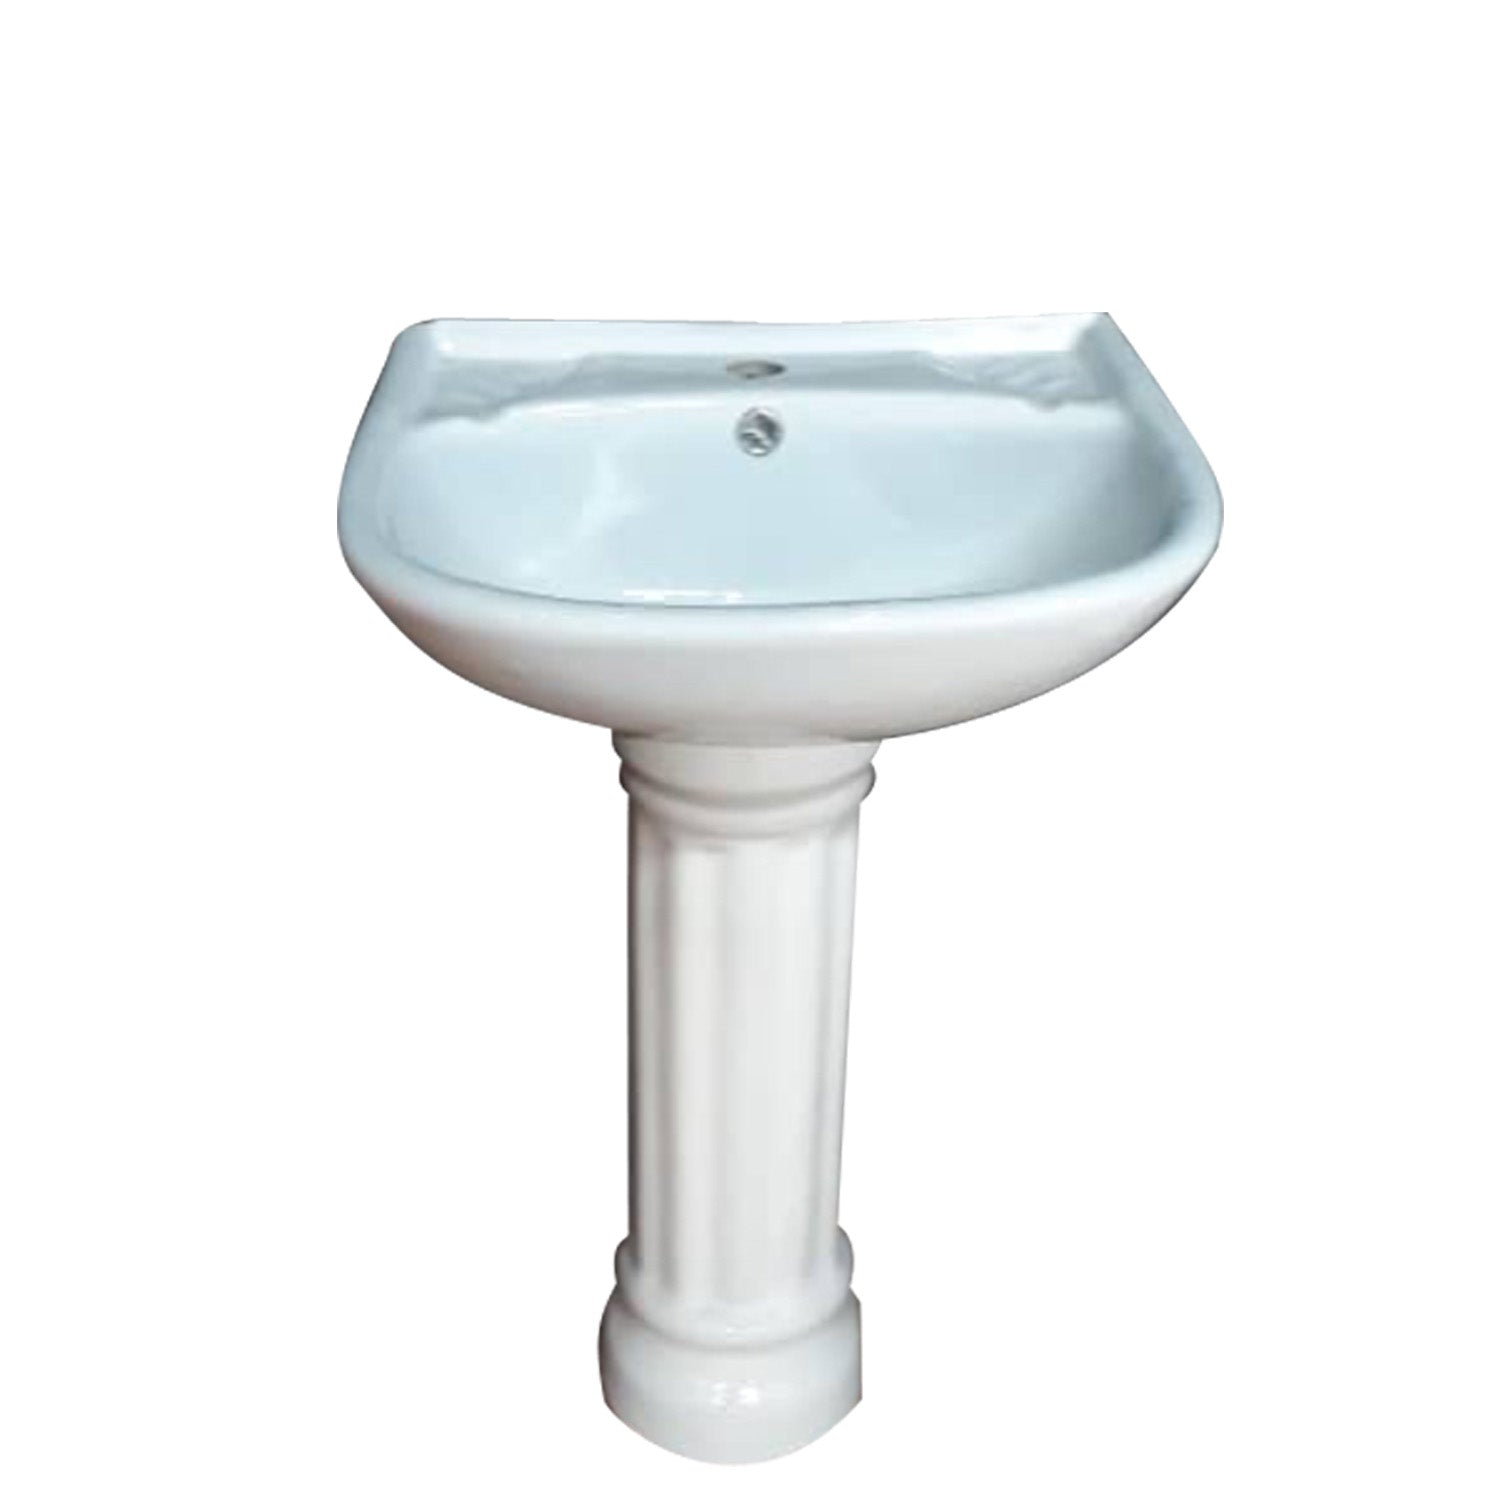 Balterley D-Shape 1 Tap Hole Basin and Full Pedestal